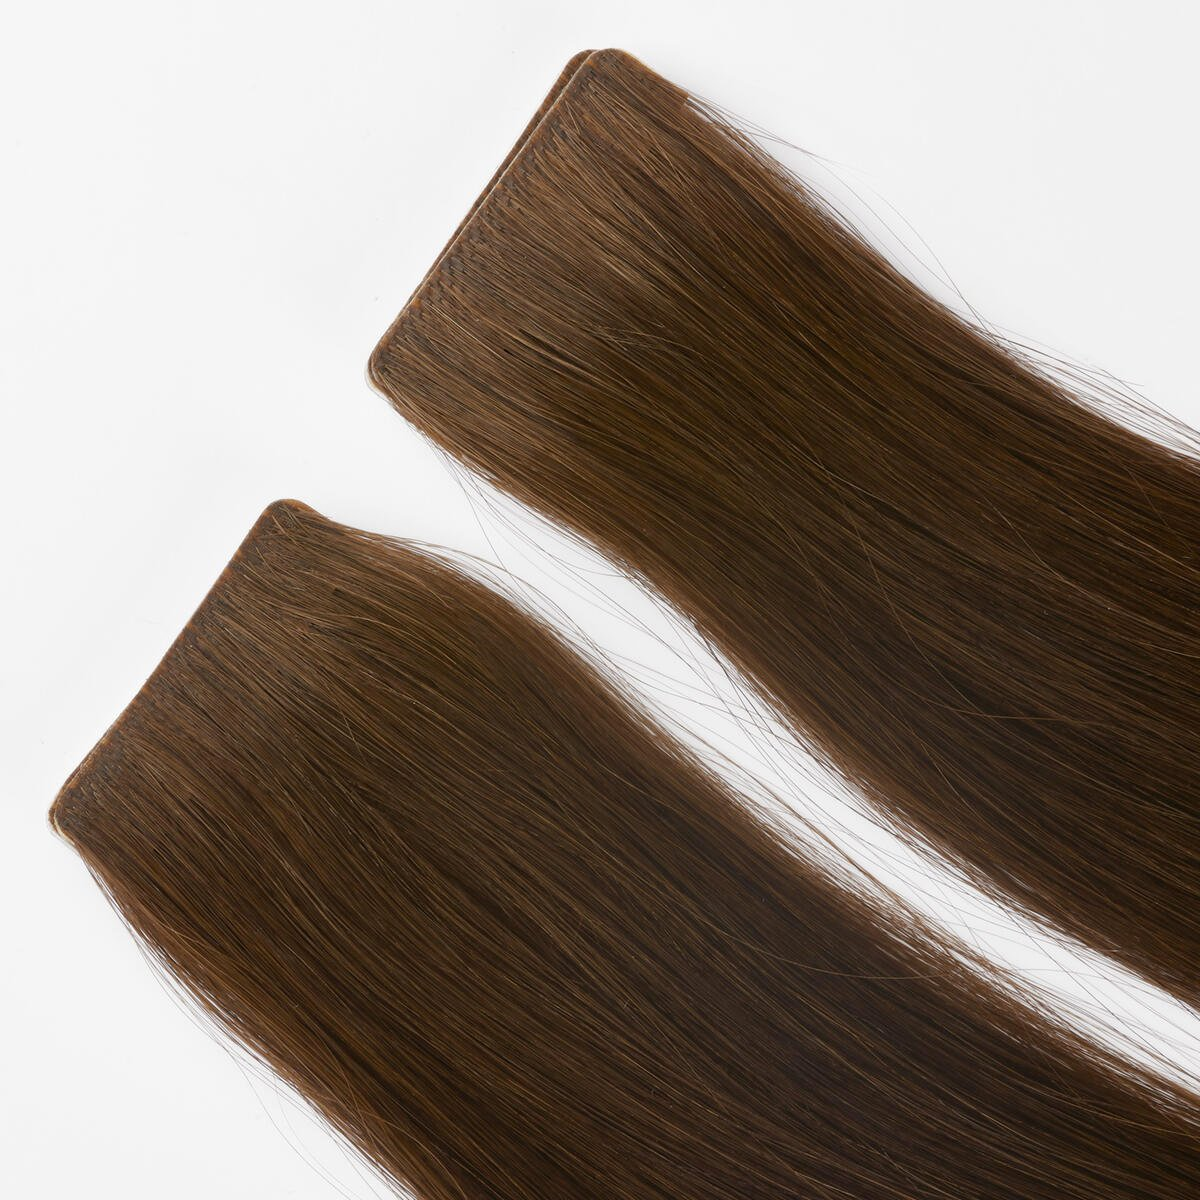 Pro Tape Extension 2.2 Coffee Brown 50 cm